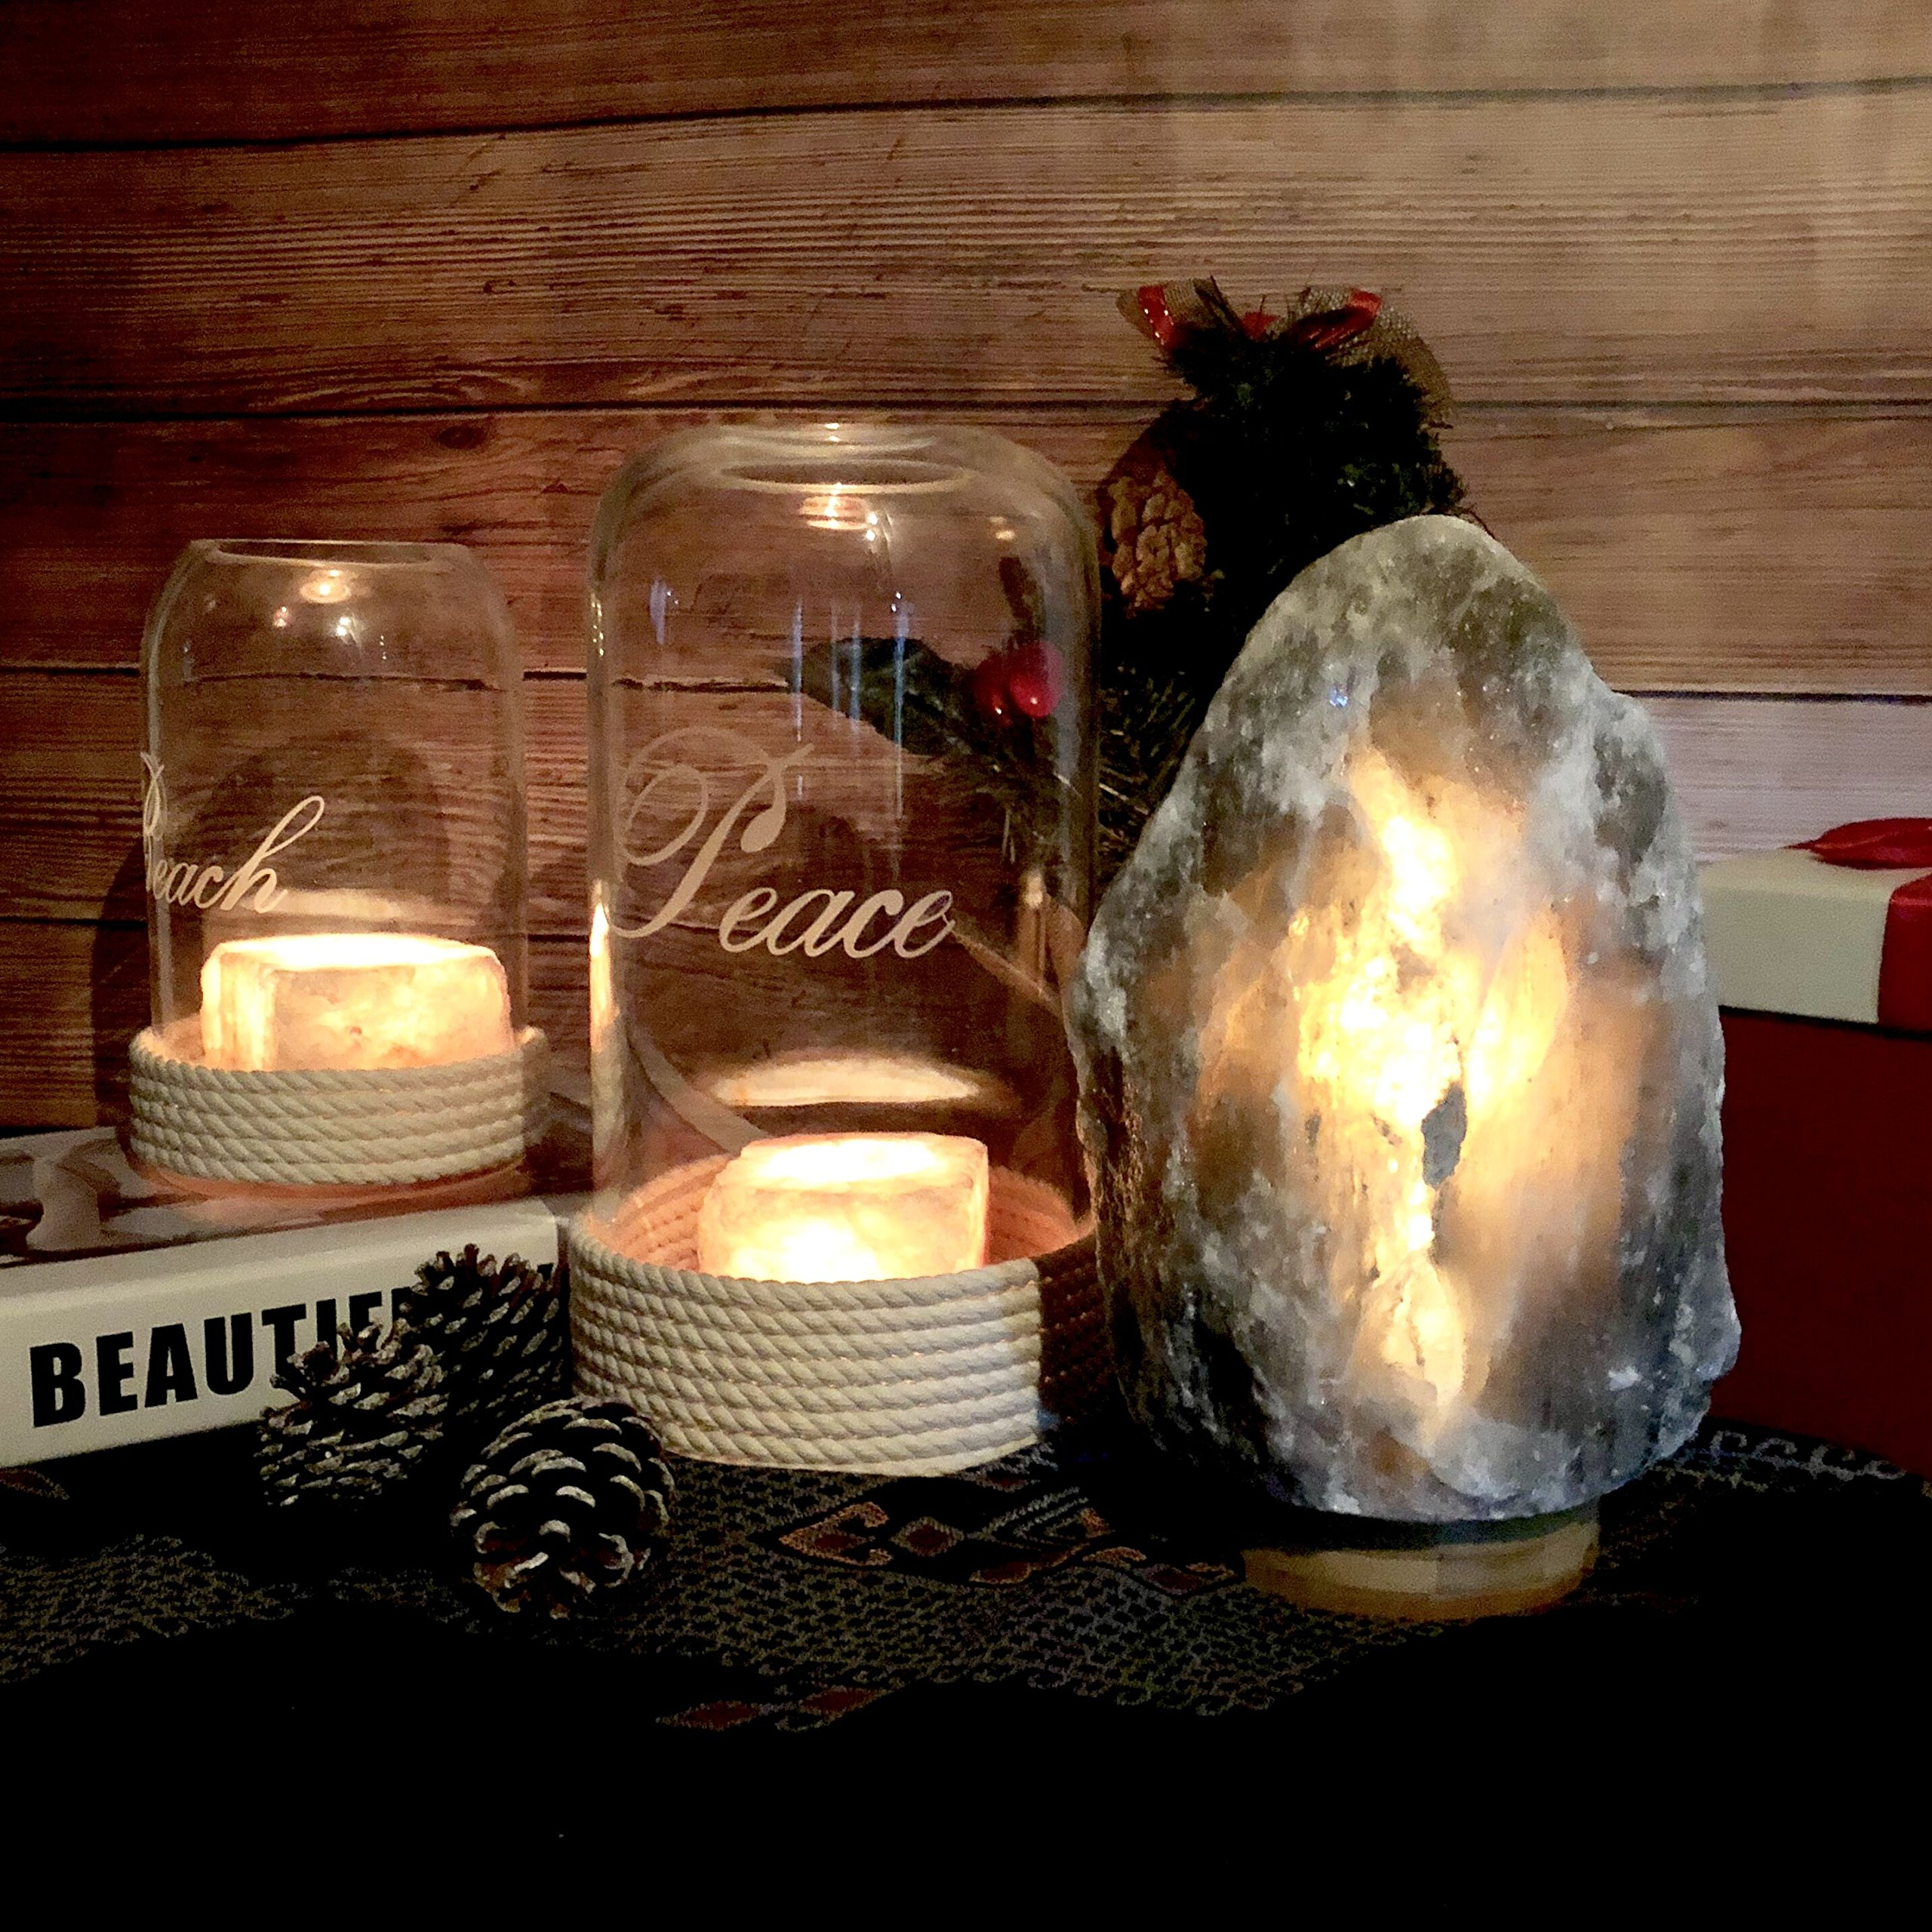 Rare Grey Gray White Black Authentic Himalayan Salt Lamp Lights Set (5-8 lbs 7-11''),Table Lamp Bamboo Base Touch Dimmer Switch Control with 1 Salt Rock Night Light, Set of 2 Pack Salt Candle Holders by MAYMII·HOME (Image #8)